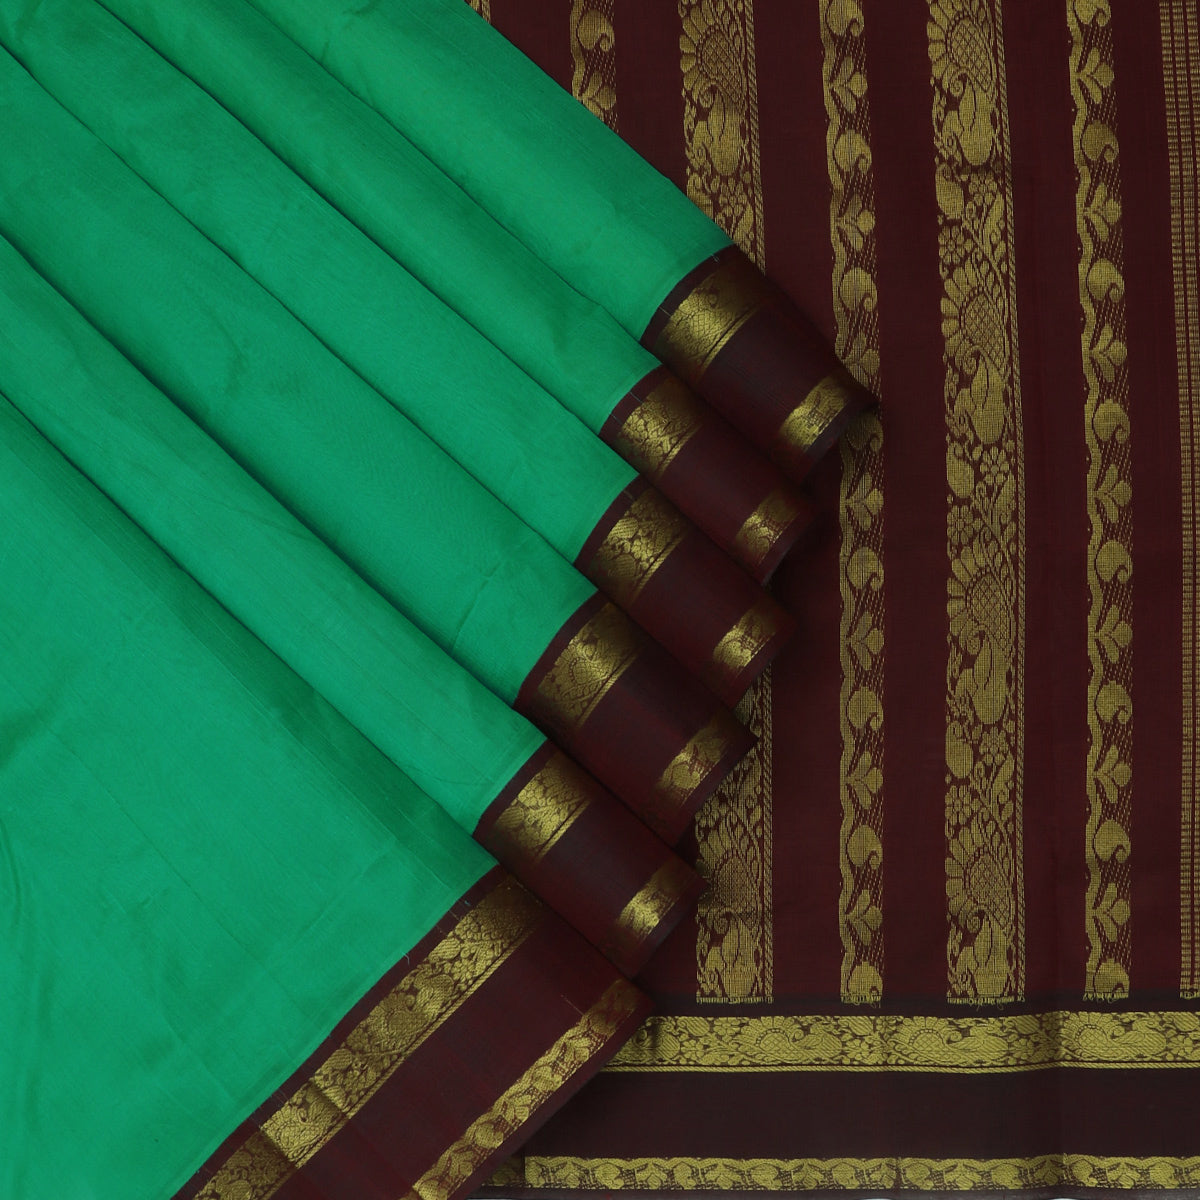 Silk Cotton Seree Light Green and Dark Maroon with Annam Zari Border Korvai